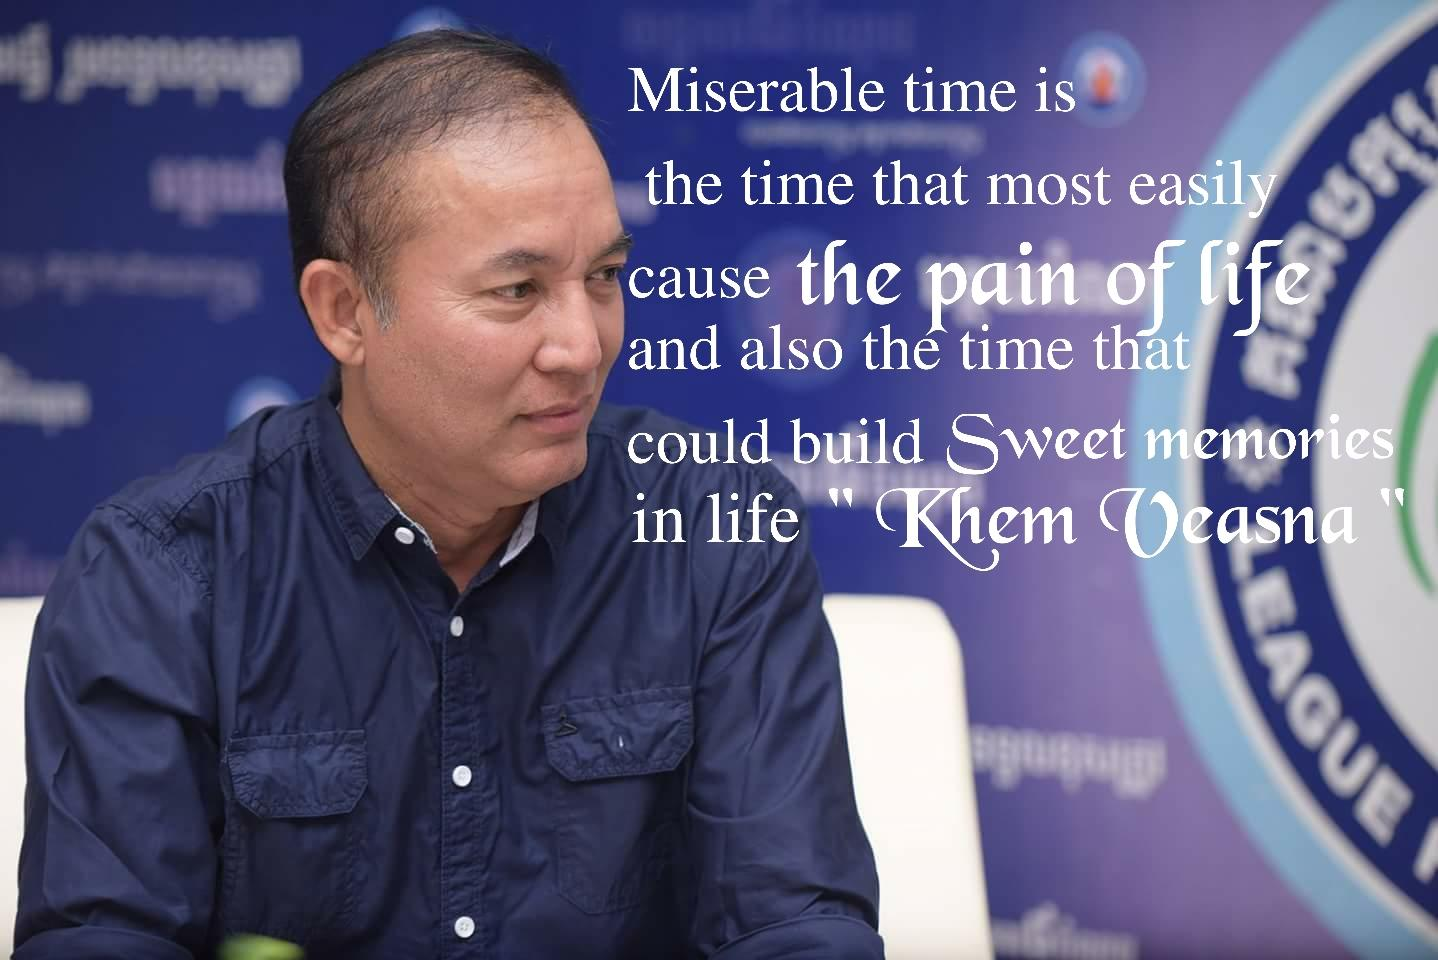 """ Miserable time is the time that most easily cause the pain of life and also the time that could build sweet memories in life ""khem veasna [1438 x 960]"